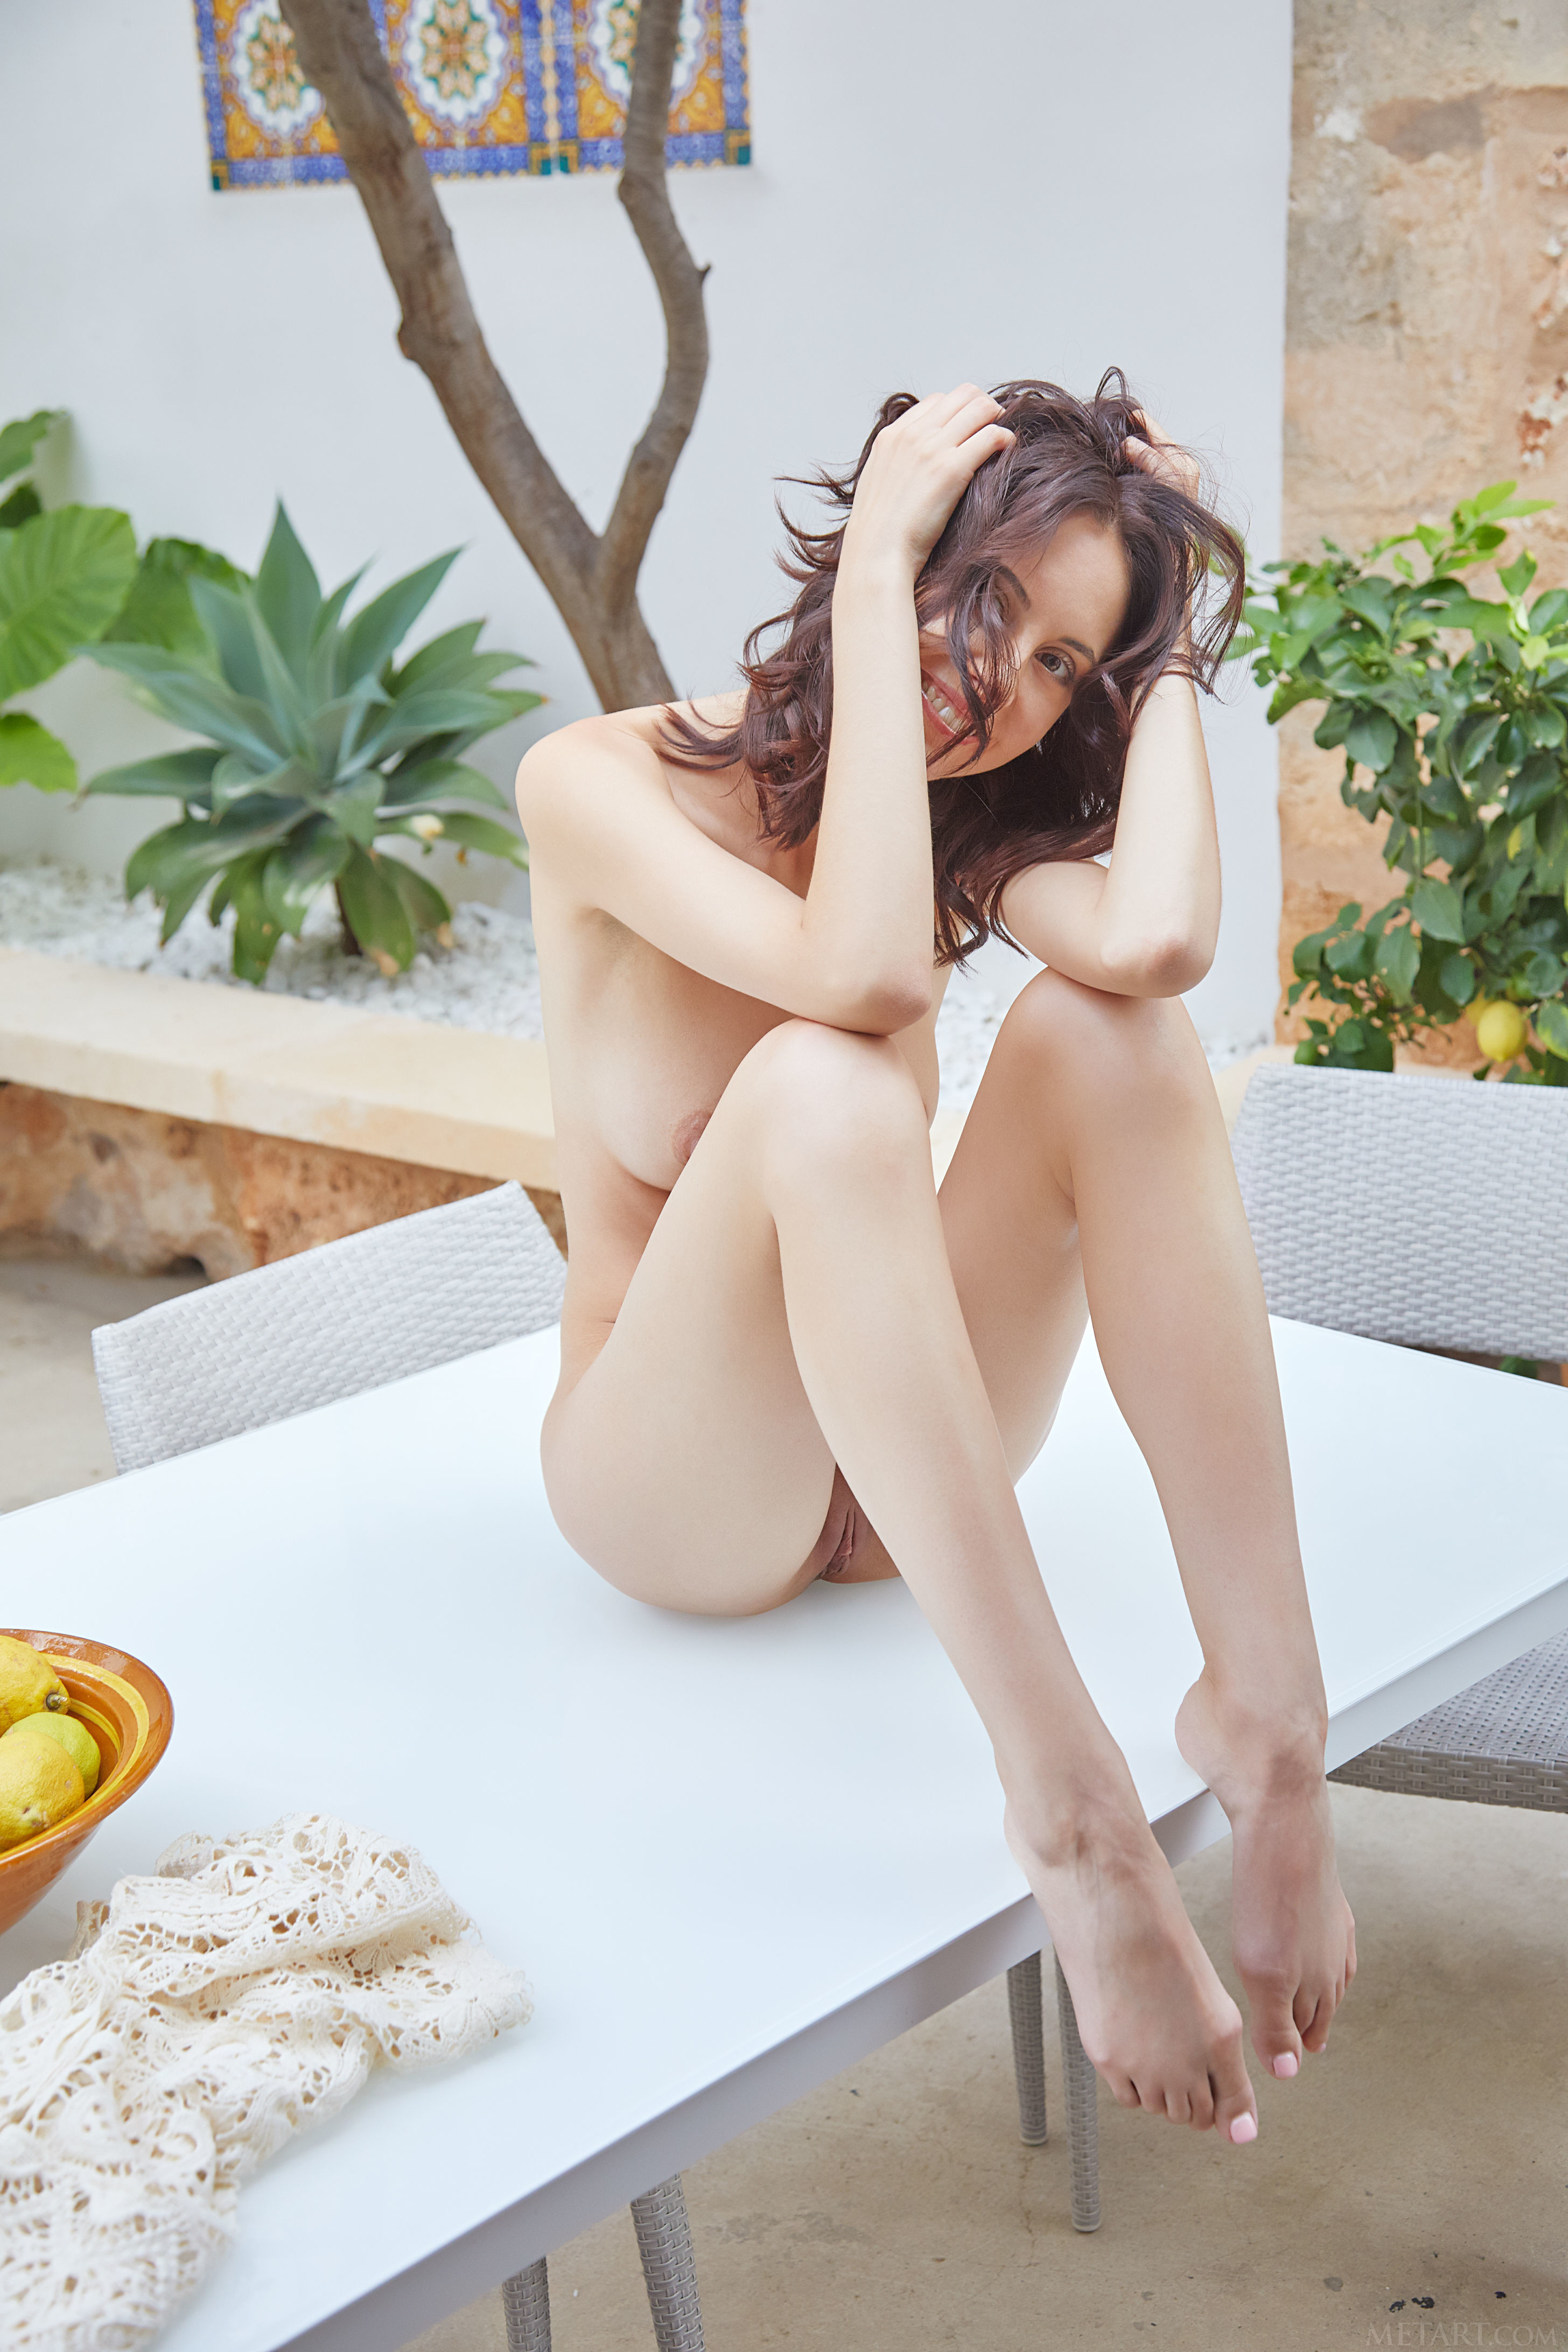 sade-mare-with-open-pussy-24.jpg